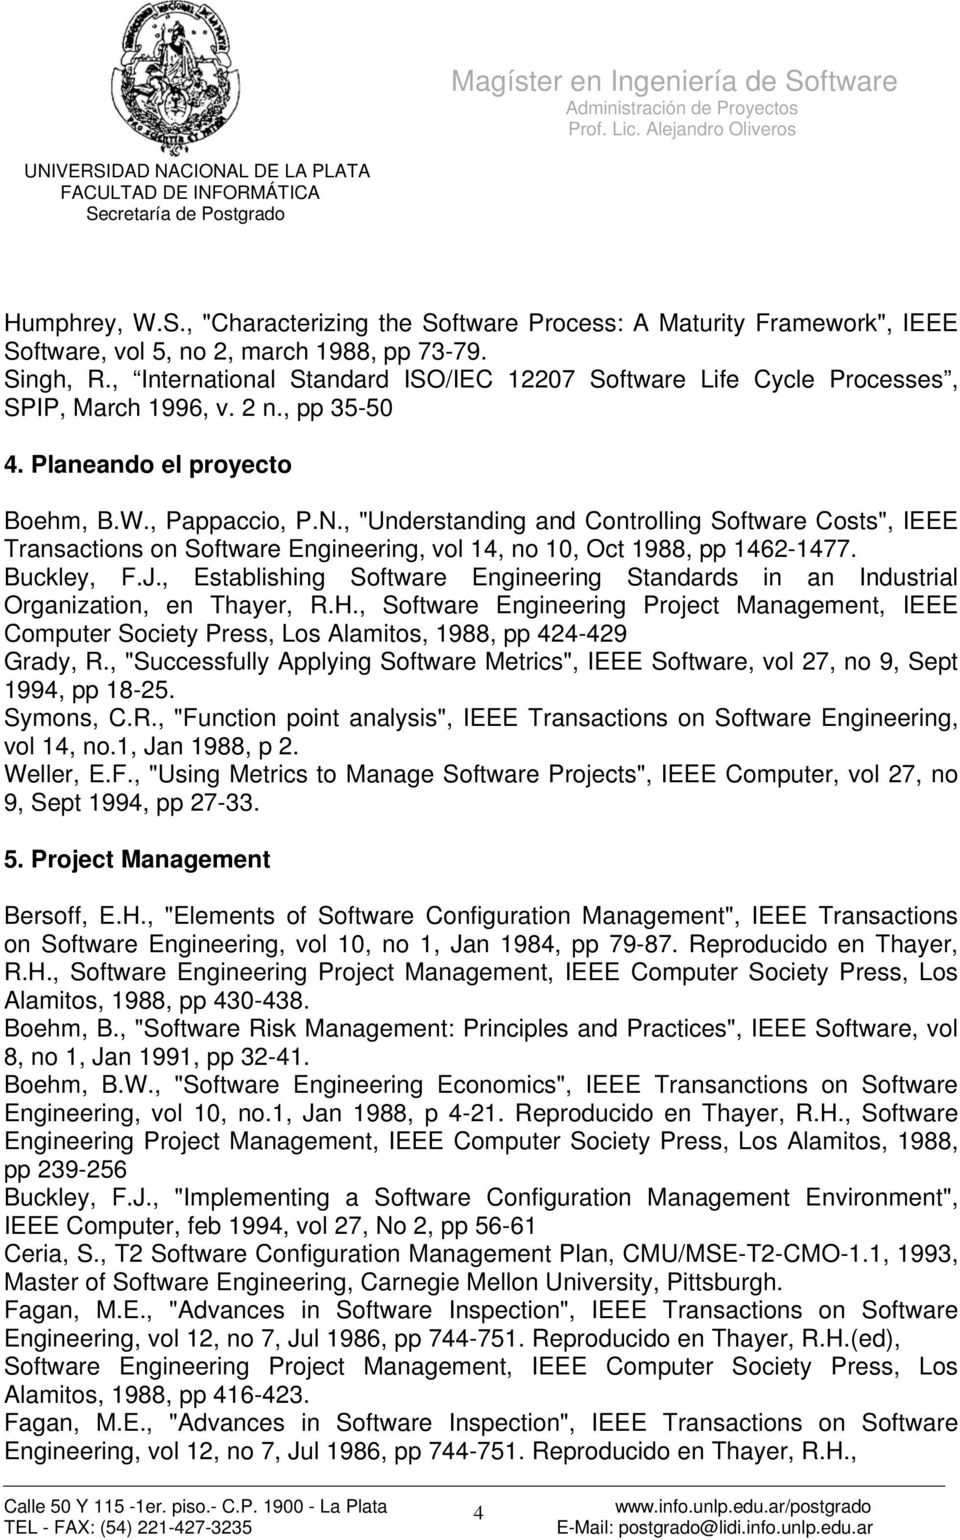 ", ""Understanding and Controlling Software Costs"", IEEE Transactions on Software Engineering, vol 14, no 10, Oct 1988, pp 1462-1477. Buckley, F.J."